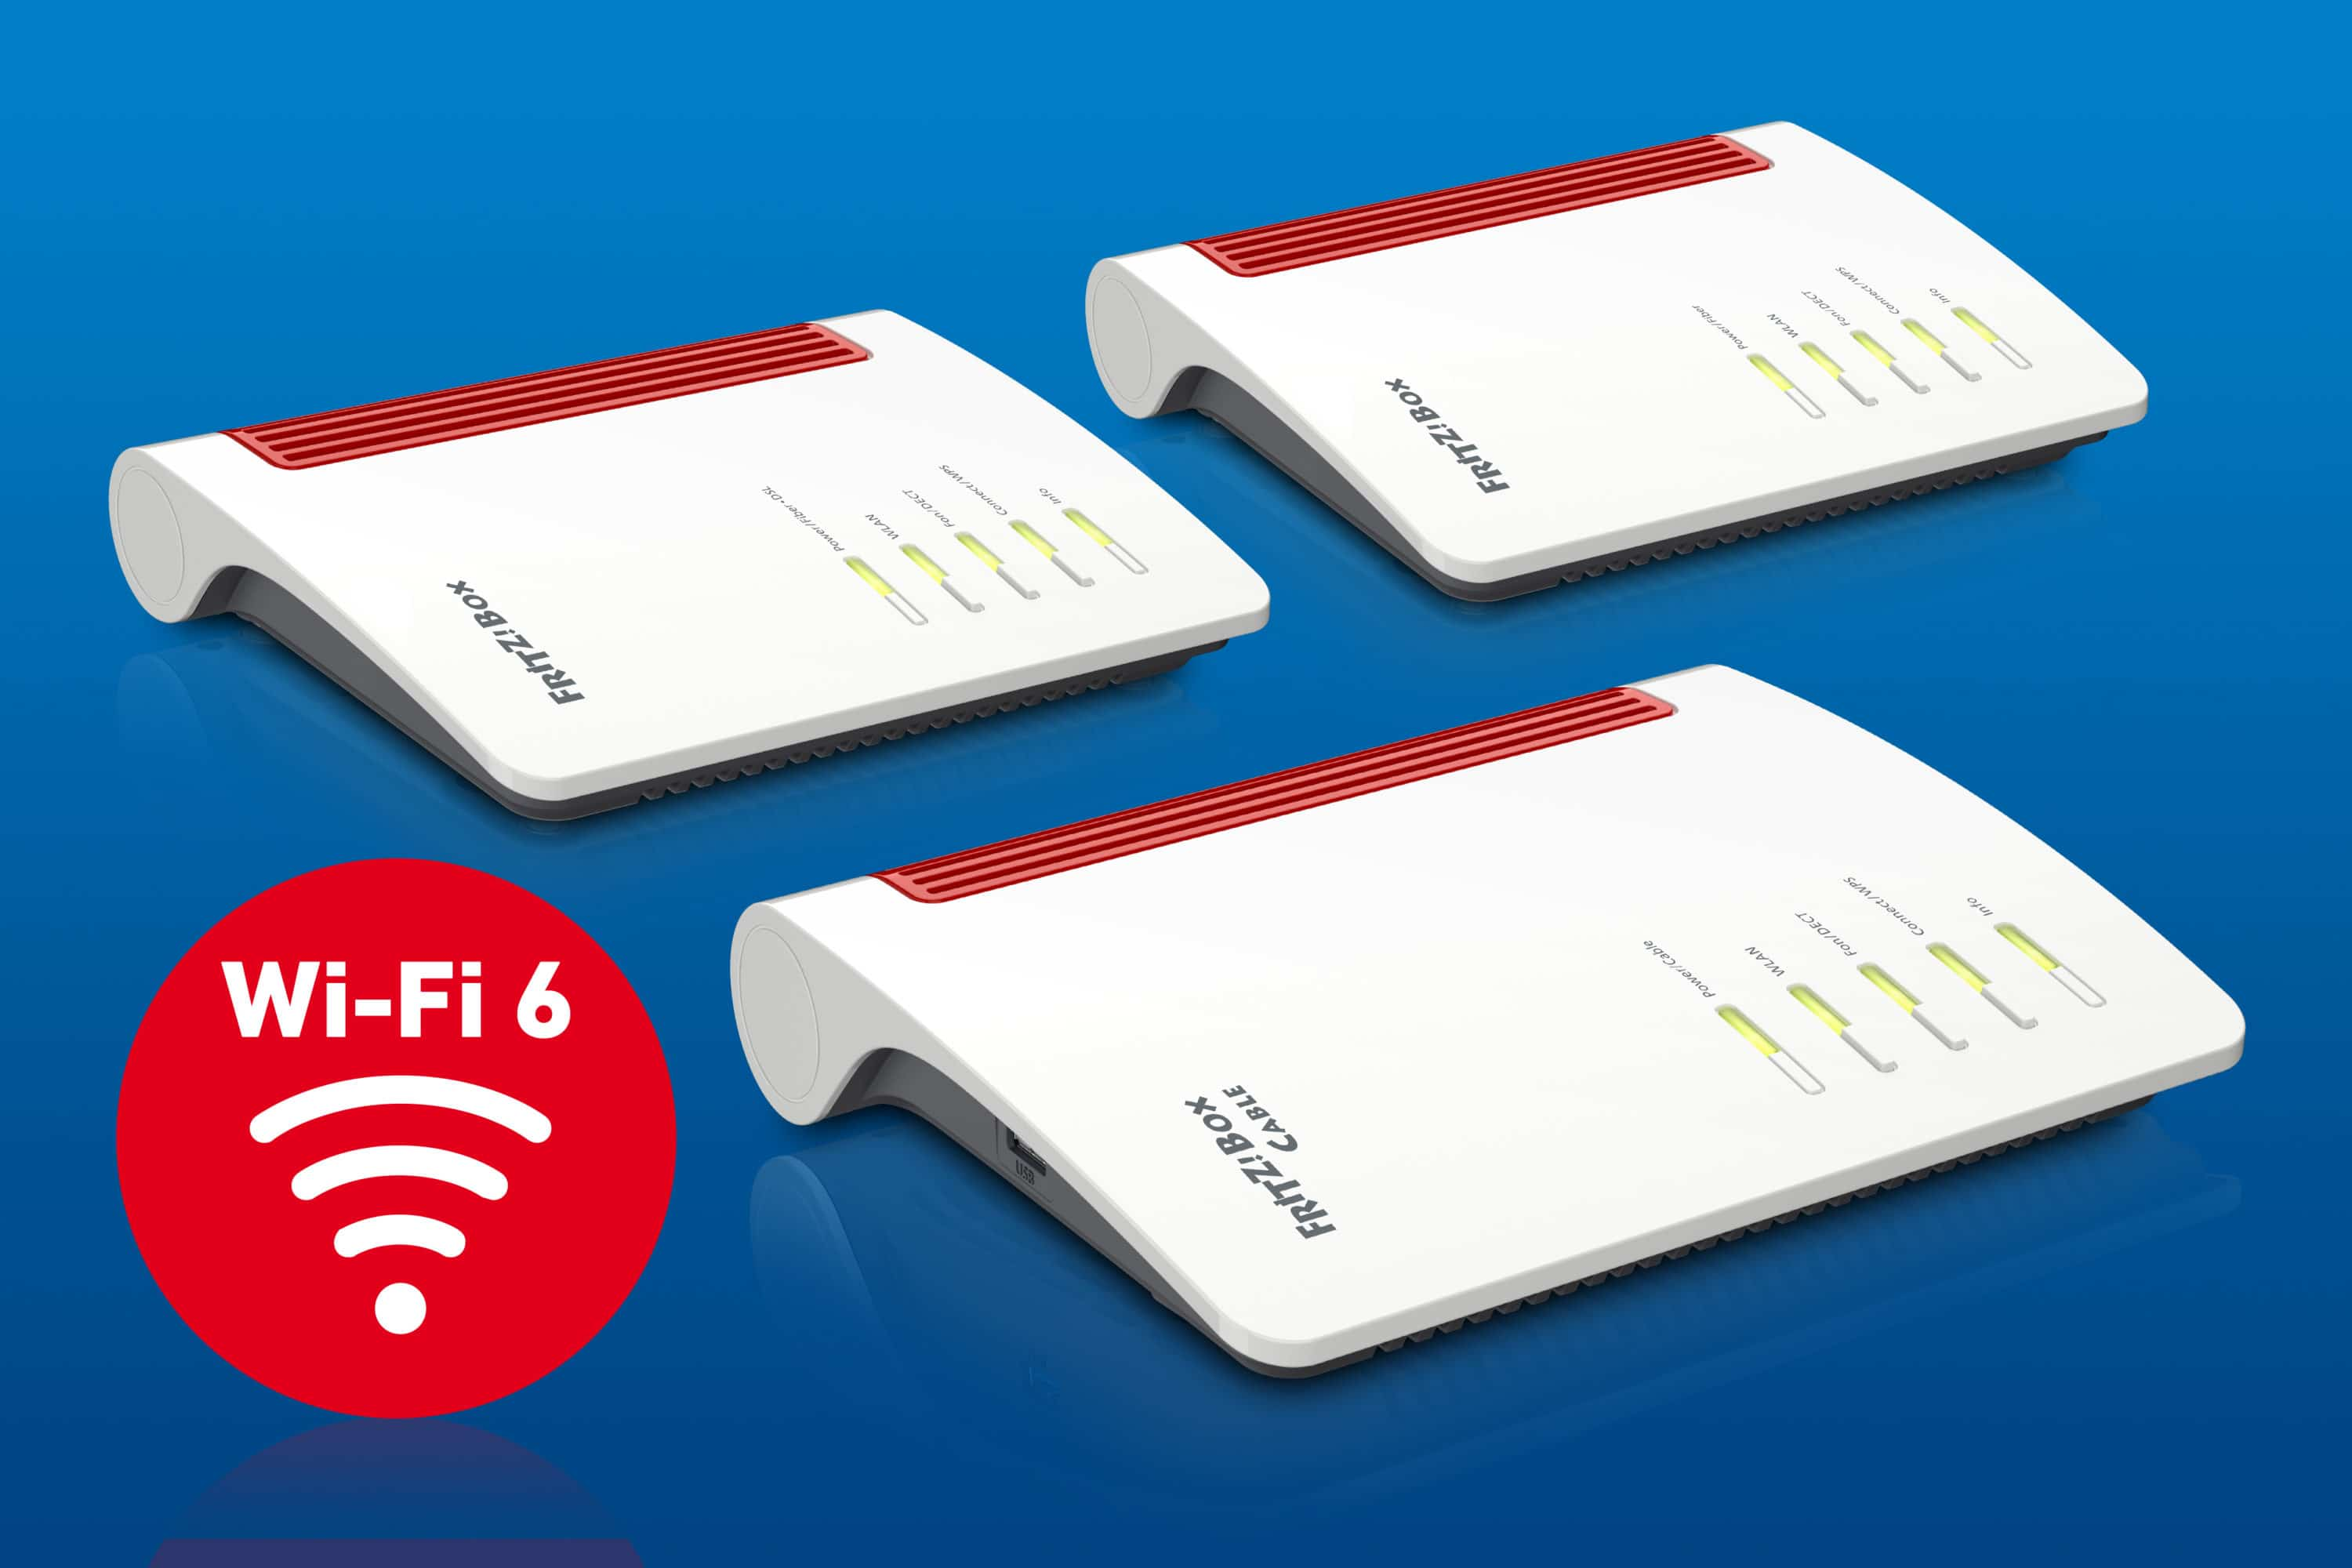 AVM Showcases New FRITZ Box Models with Wi Fi 20 at IFA